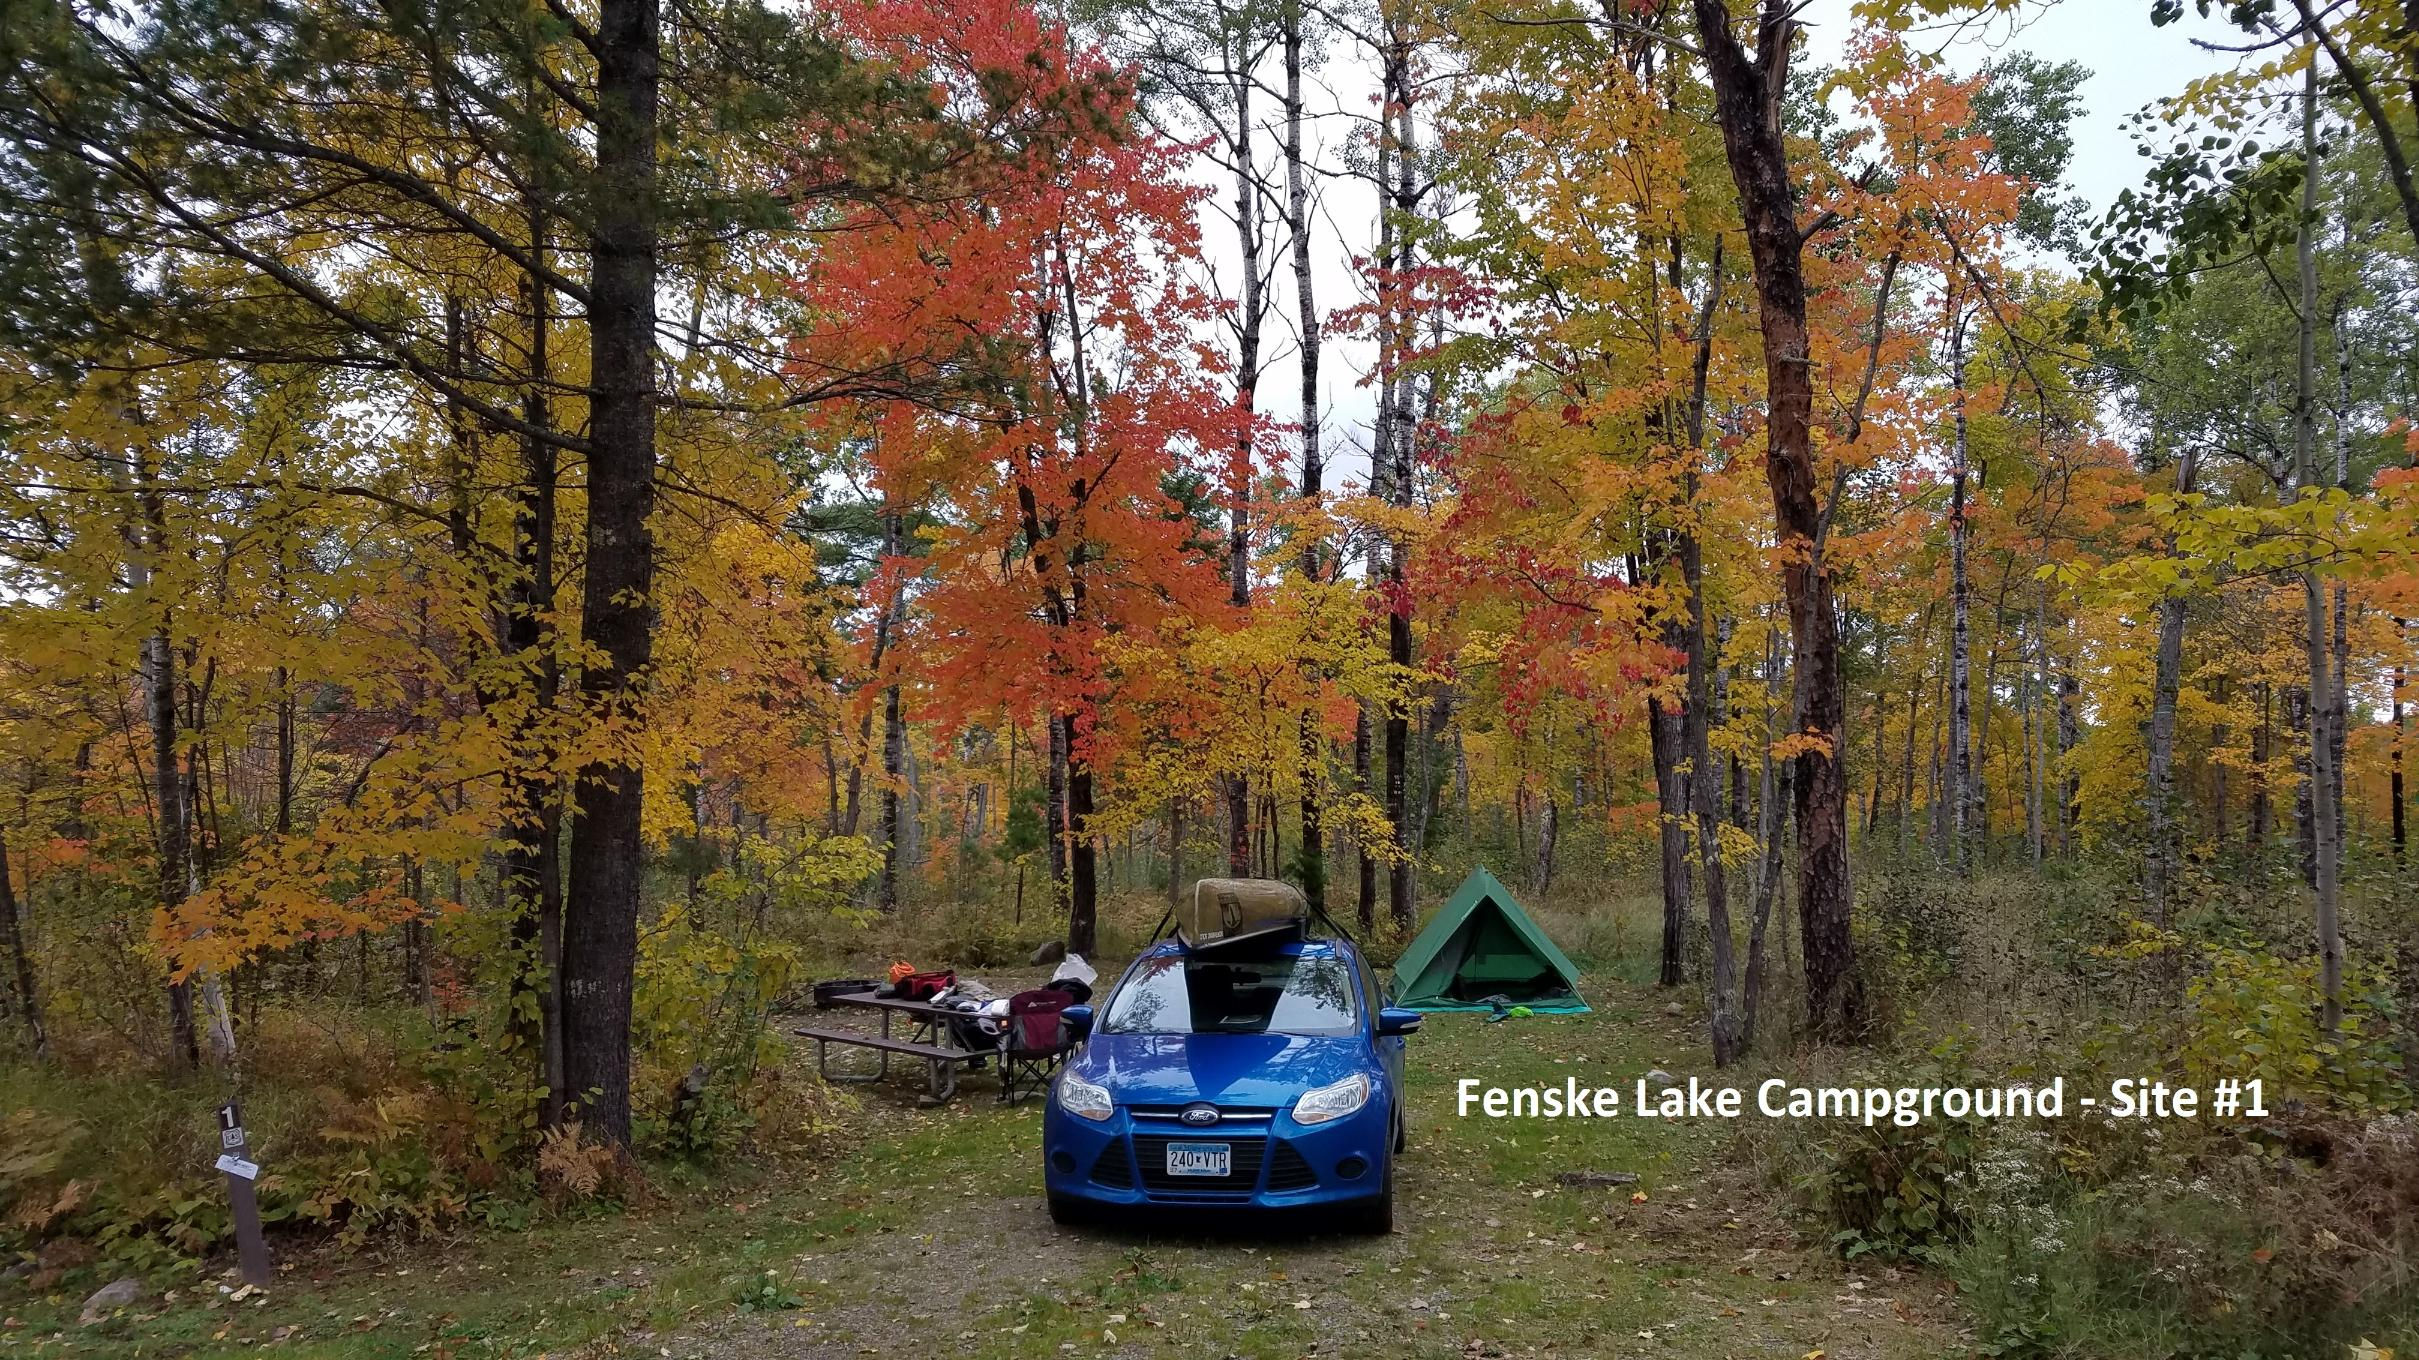 Fenske Lake campground